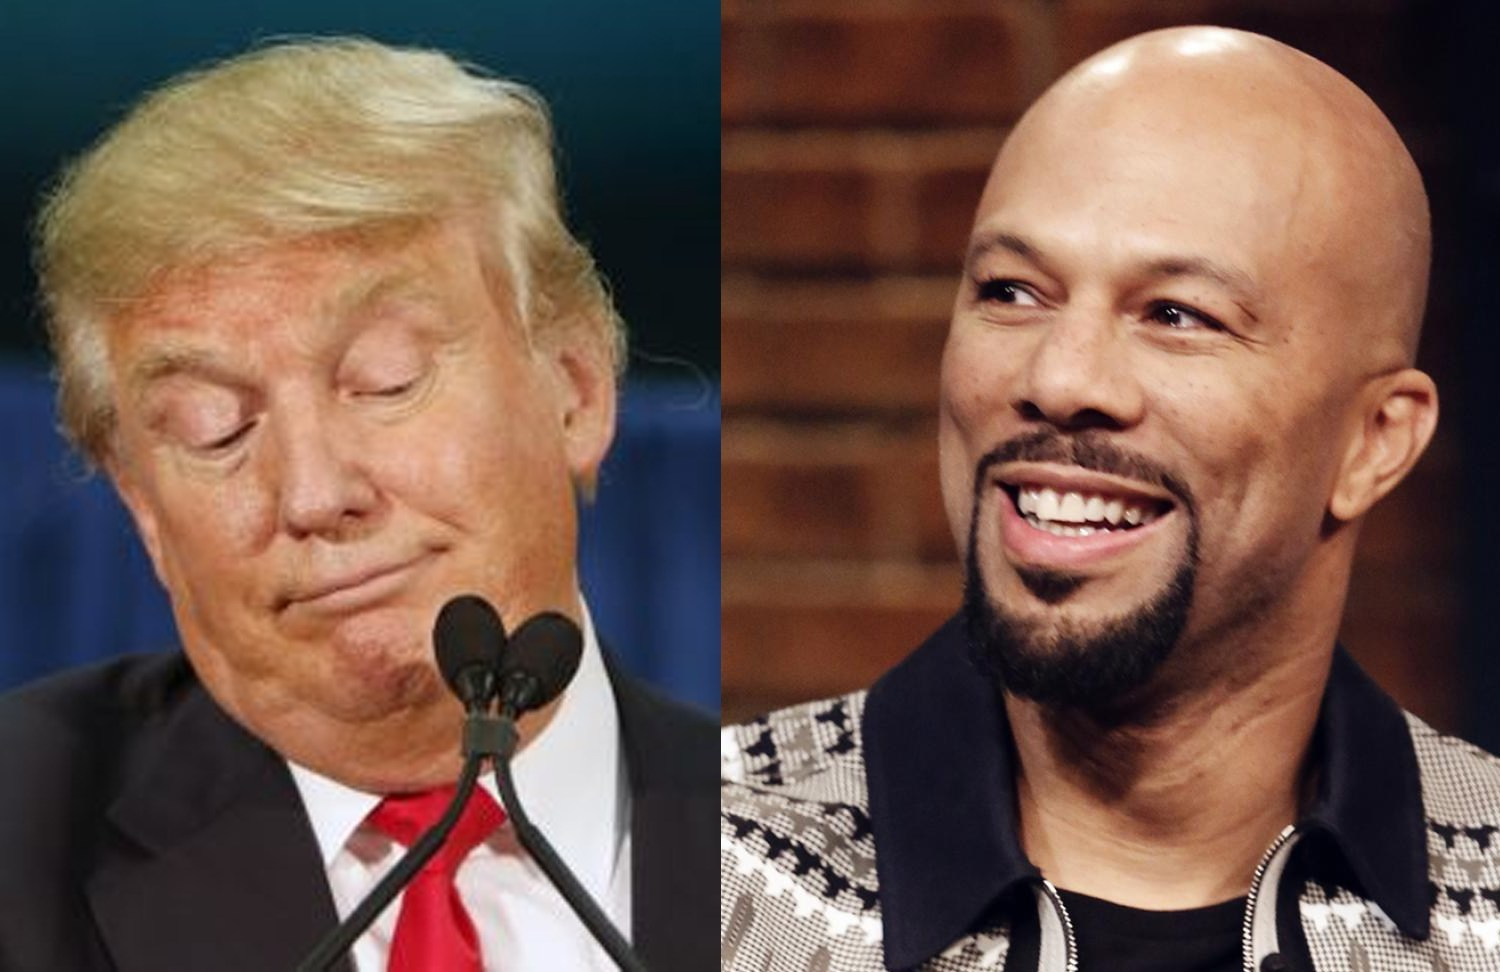 Trump could use therapy says US rapper Common –